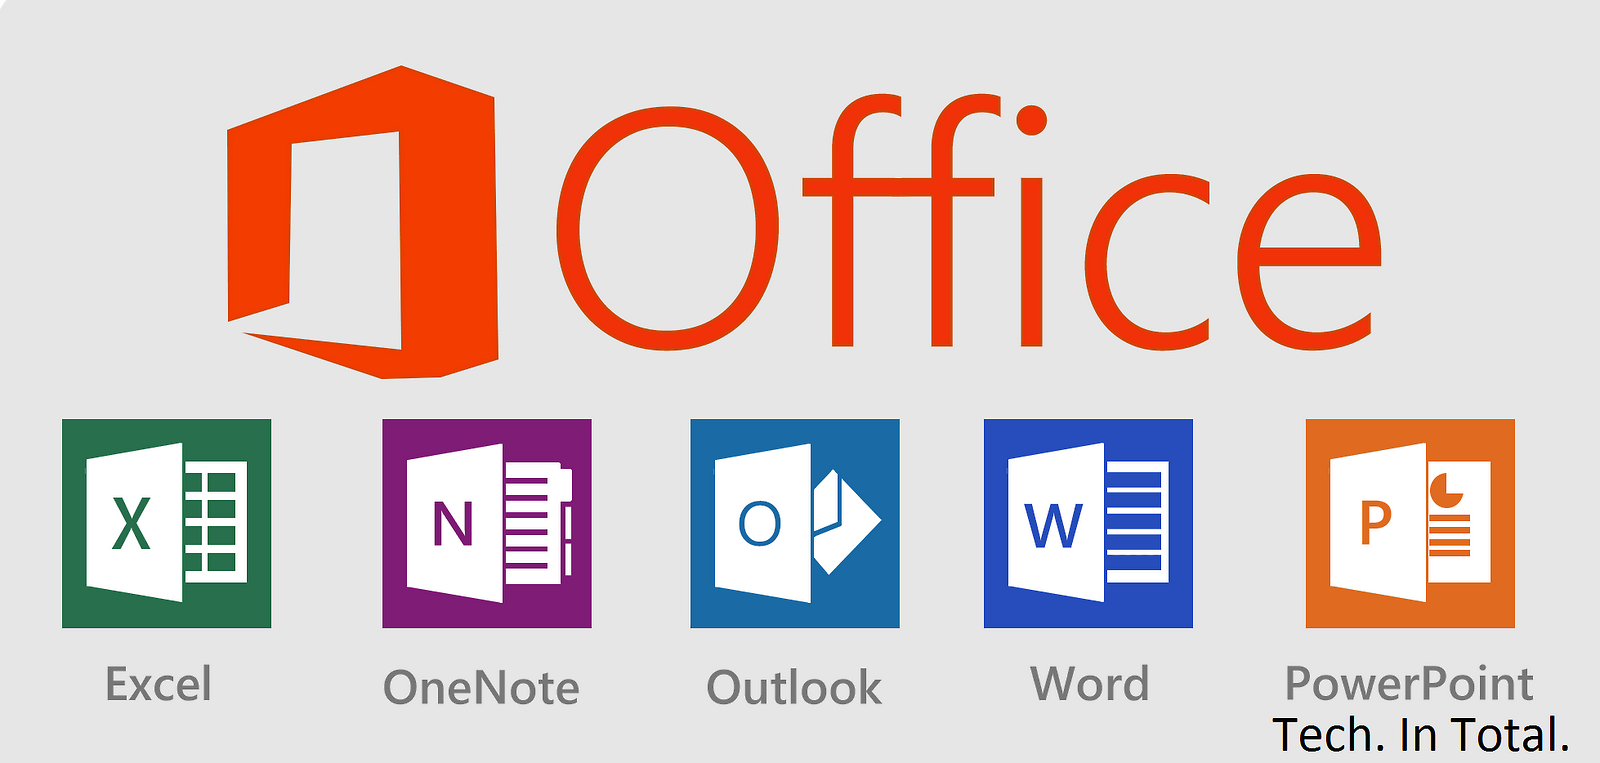 Microsoft Office 2013 Key sale | Buy Office 2013 Product Key